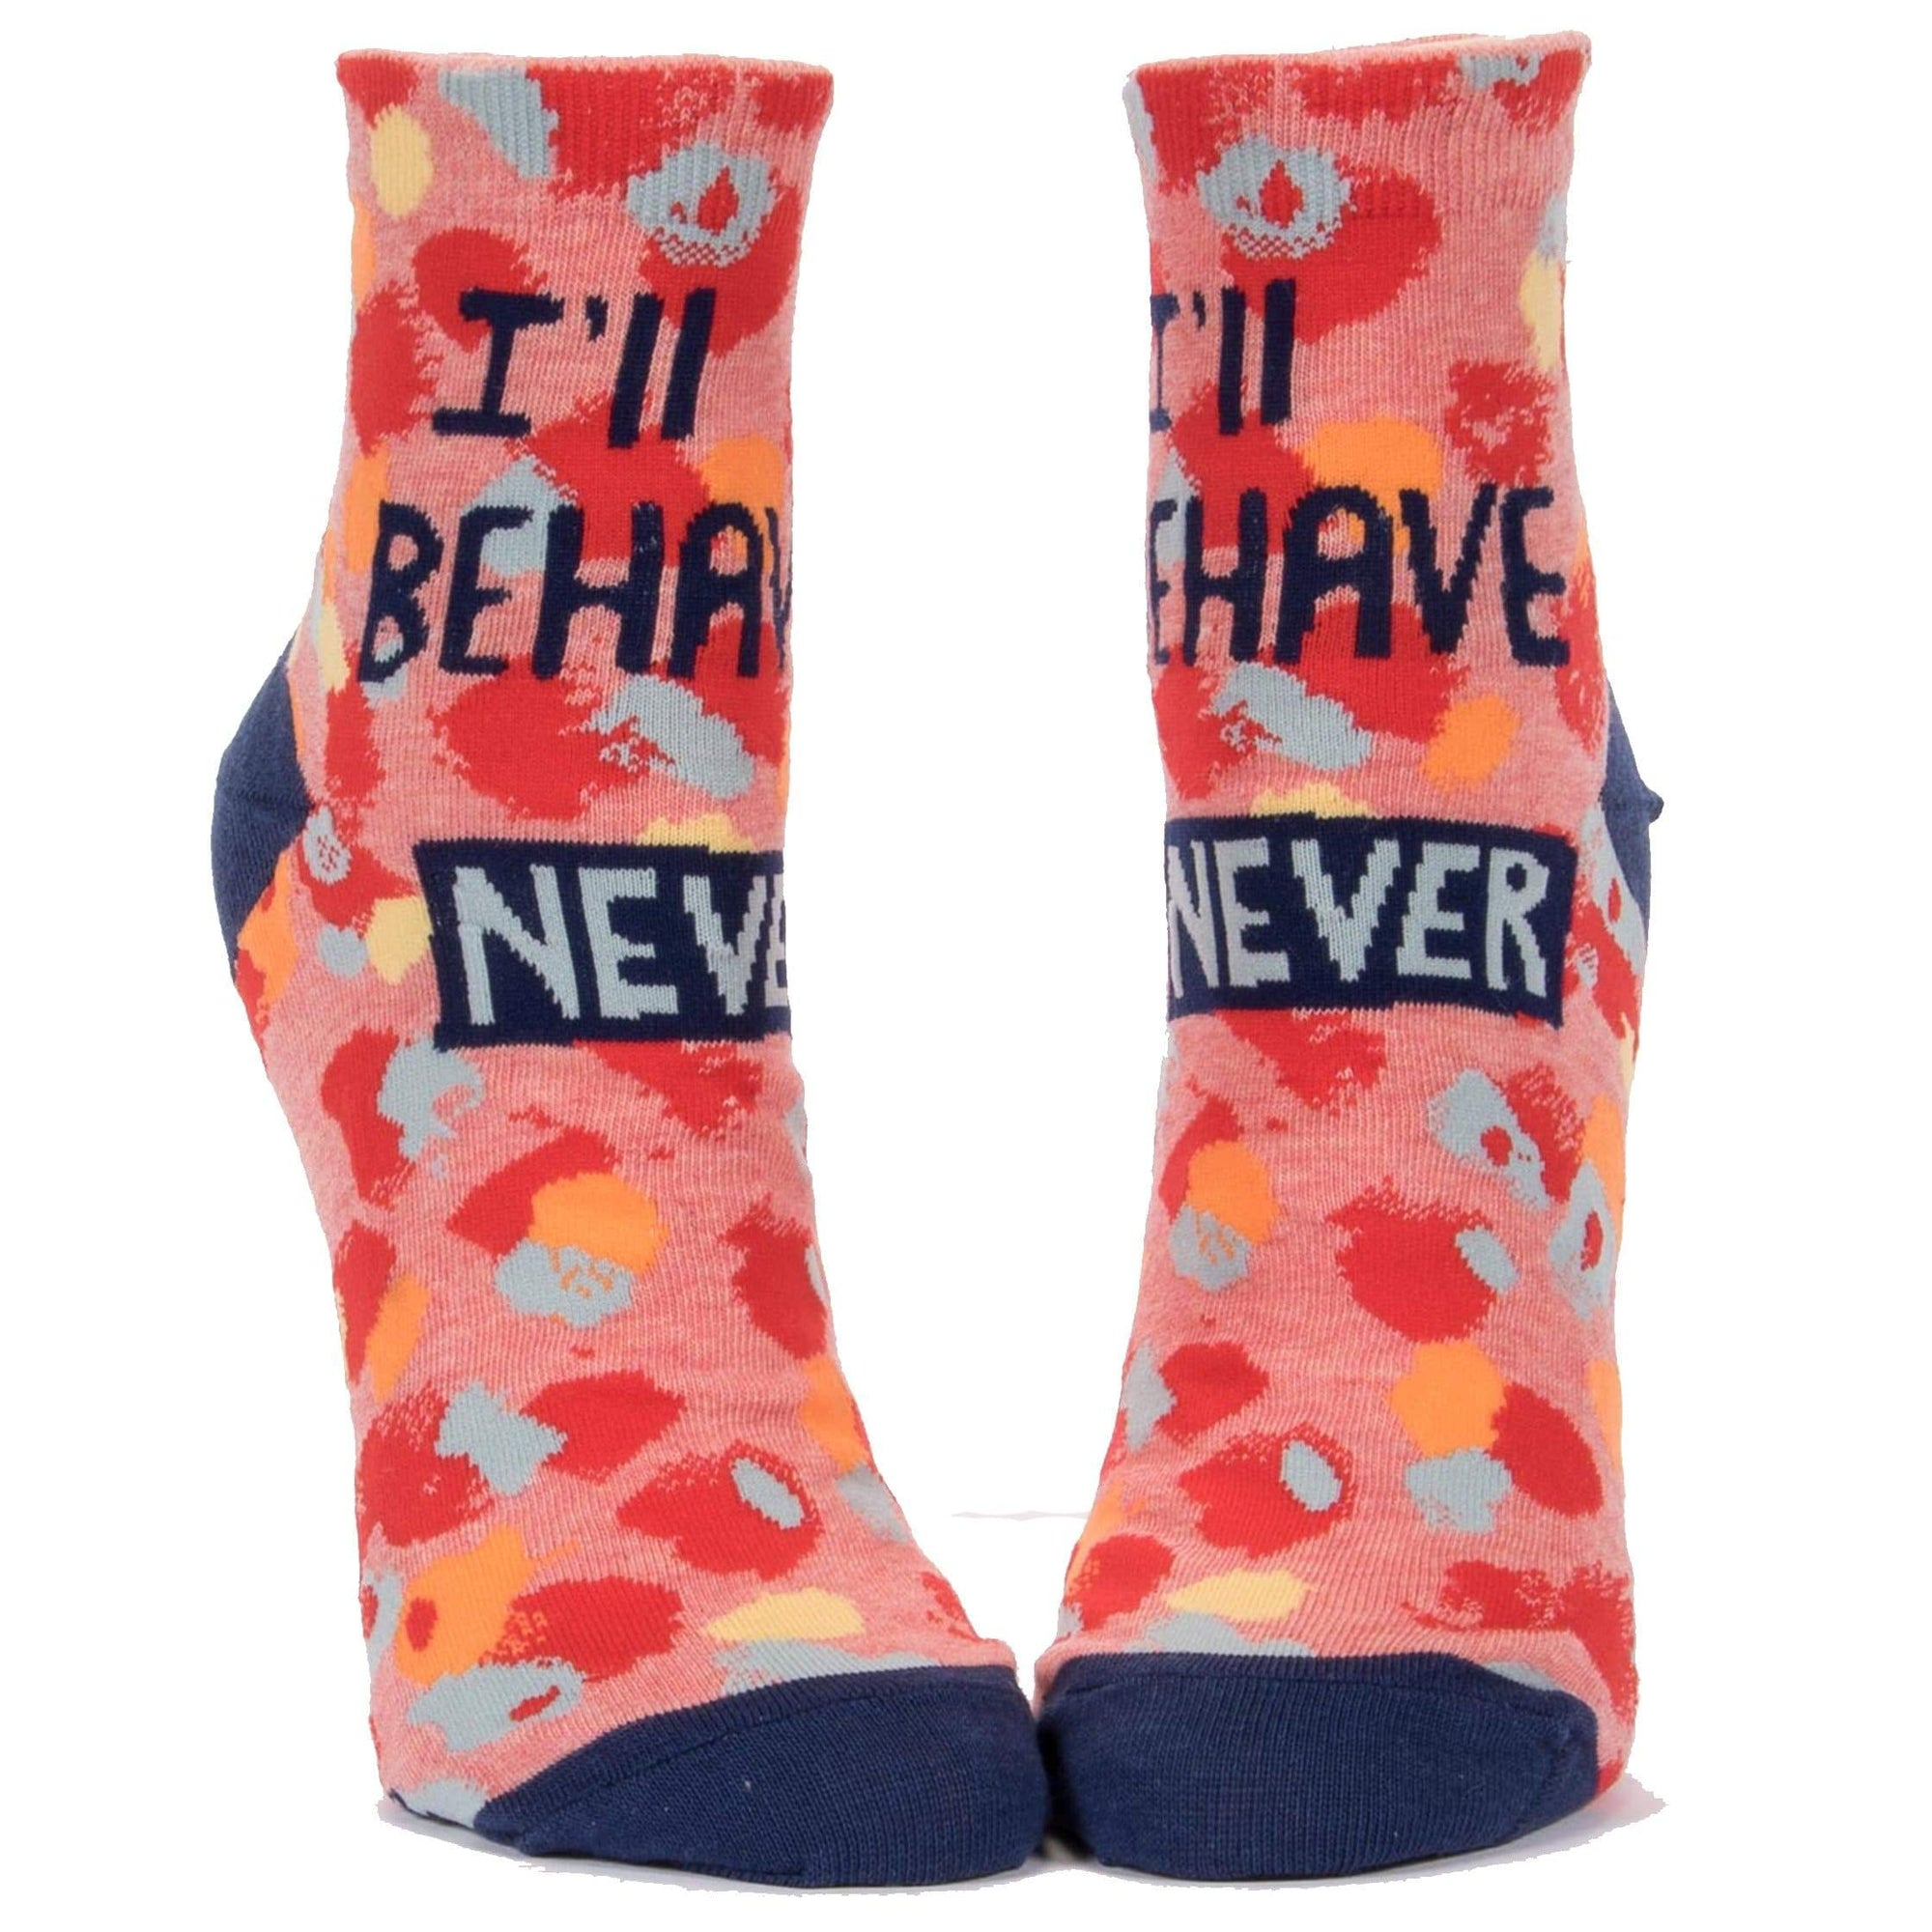 I'll Behave Never  Women's Ankle Sock pink